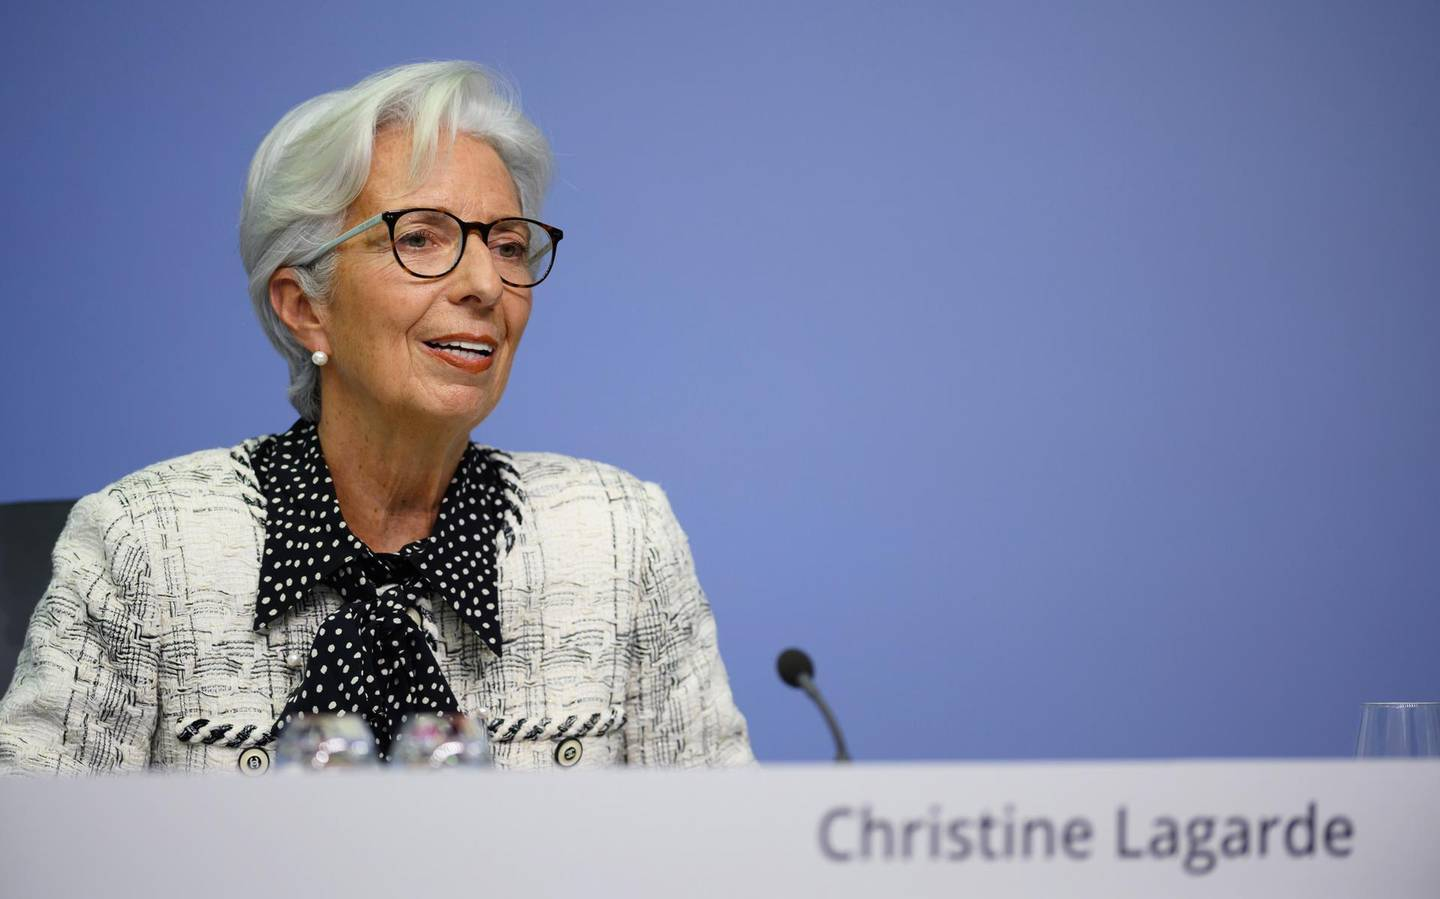 epa08783757 A handout photo made available by European Central Bank shows European Central Bank (ECB) President Christine Lagarde during a press conference following the meeting of the Governing Council of the European Central Bank in Frankfurt am Main, Germany, 29 October 2020.  EPA/SANZIJANA PERJU / EUROPEAN CENTRAL BANK / HANDOUT  HANDOUT EDITORIAL USE ONLY/NO SALES